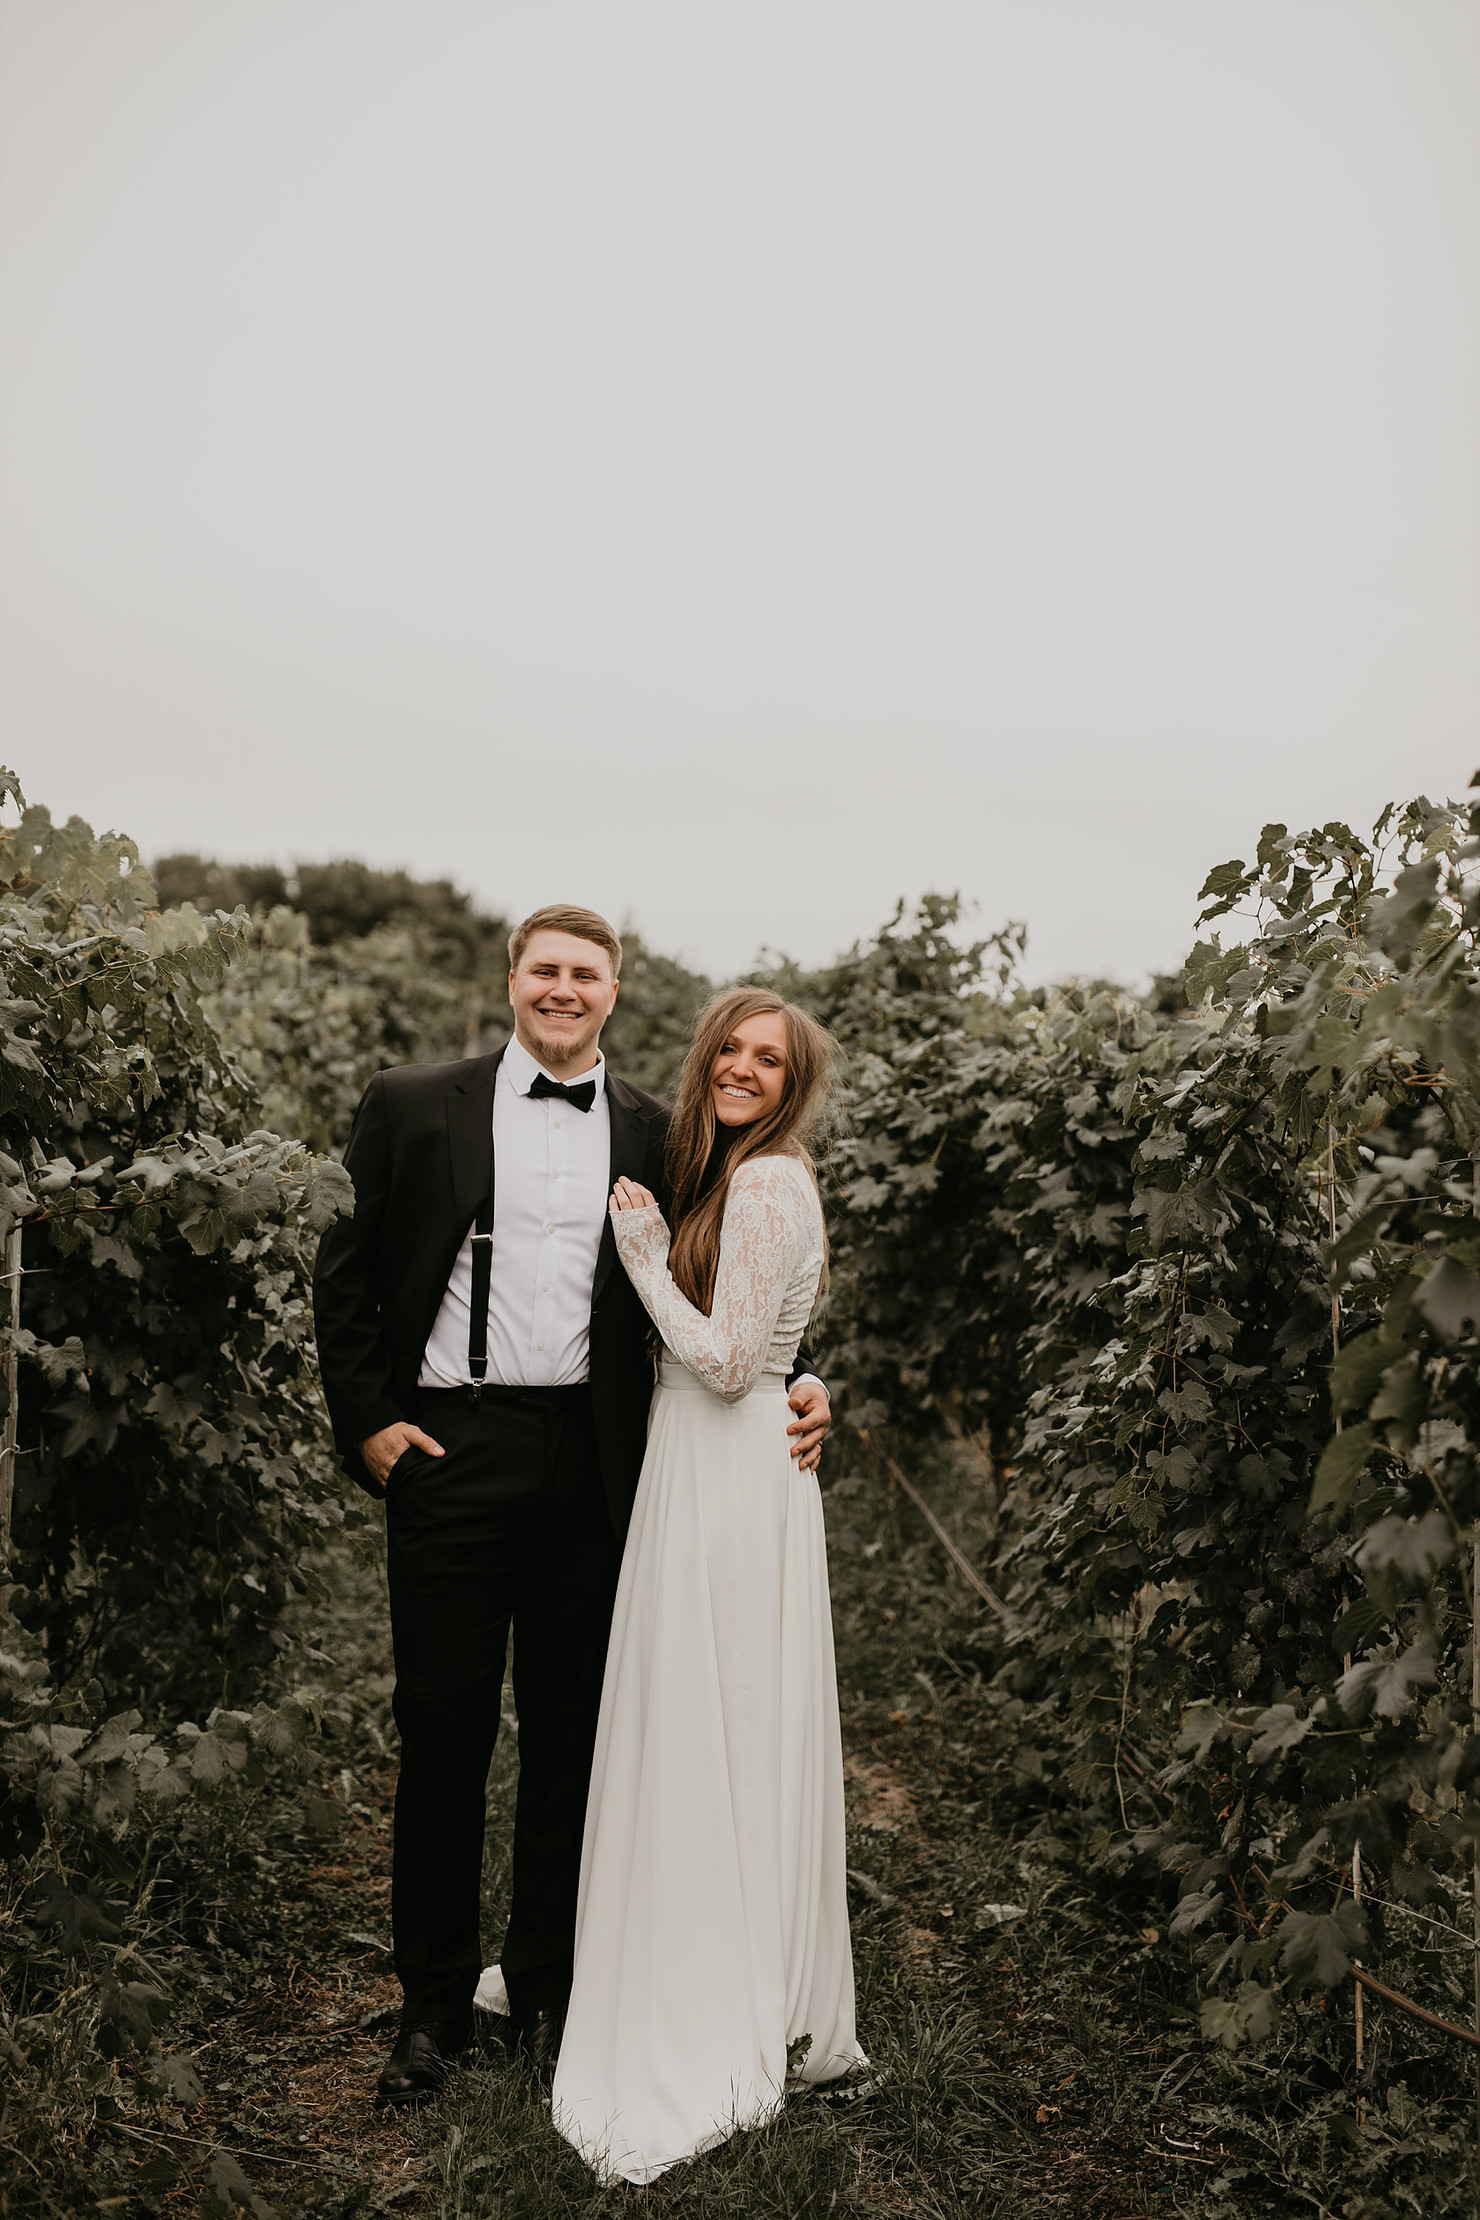 Maclane & Bryce Married 9/29/18 at Round Lake Winery | Photography by    Sophisticated Grace